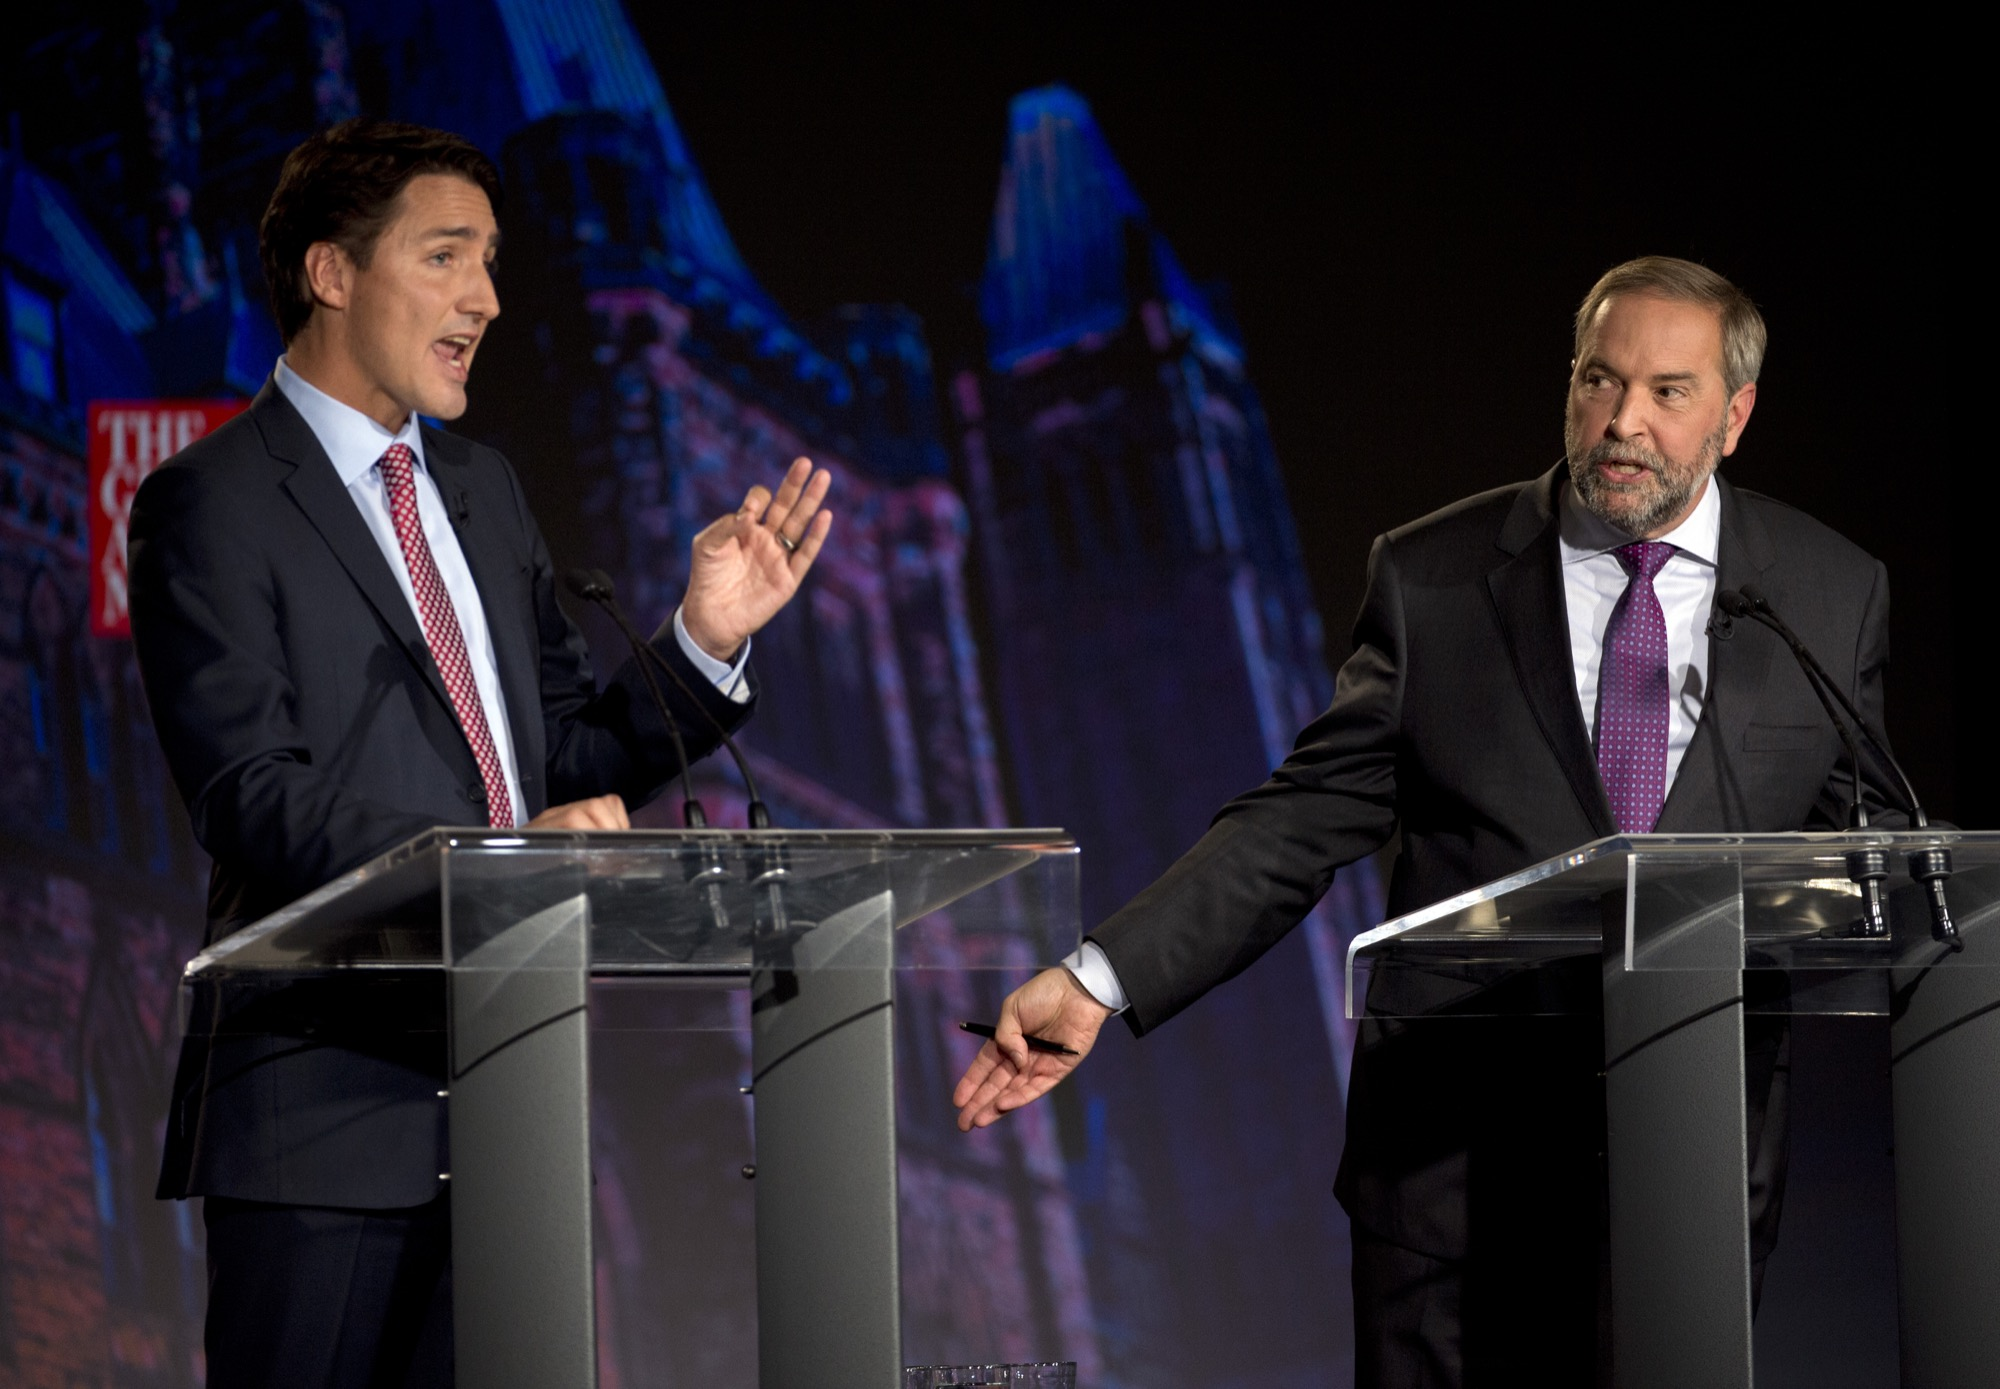 Liberal leader Justin Trudeau, left, debates NDP leader Tom Mulcair during the Globe and Mail leaders' debate in Calgary last week. Both leaders have stated firmly that they would not prop Conservative Leader Stephen Harper if his party wins a minority government in next month's federal election.